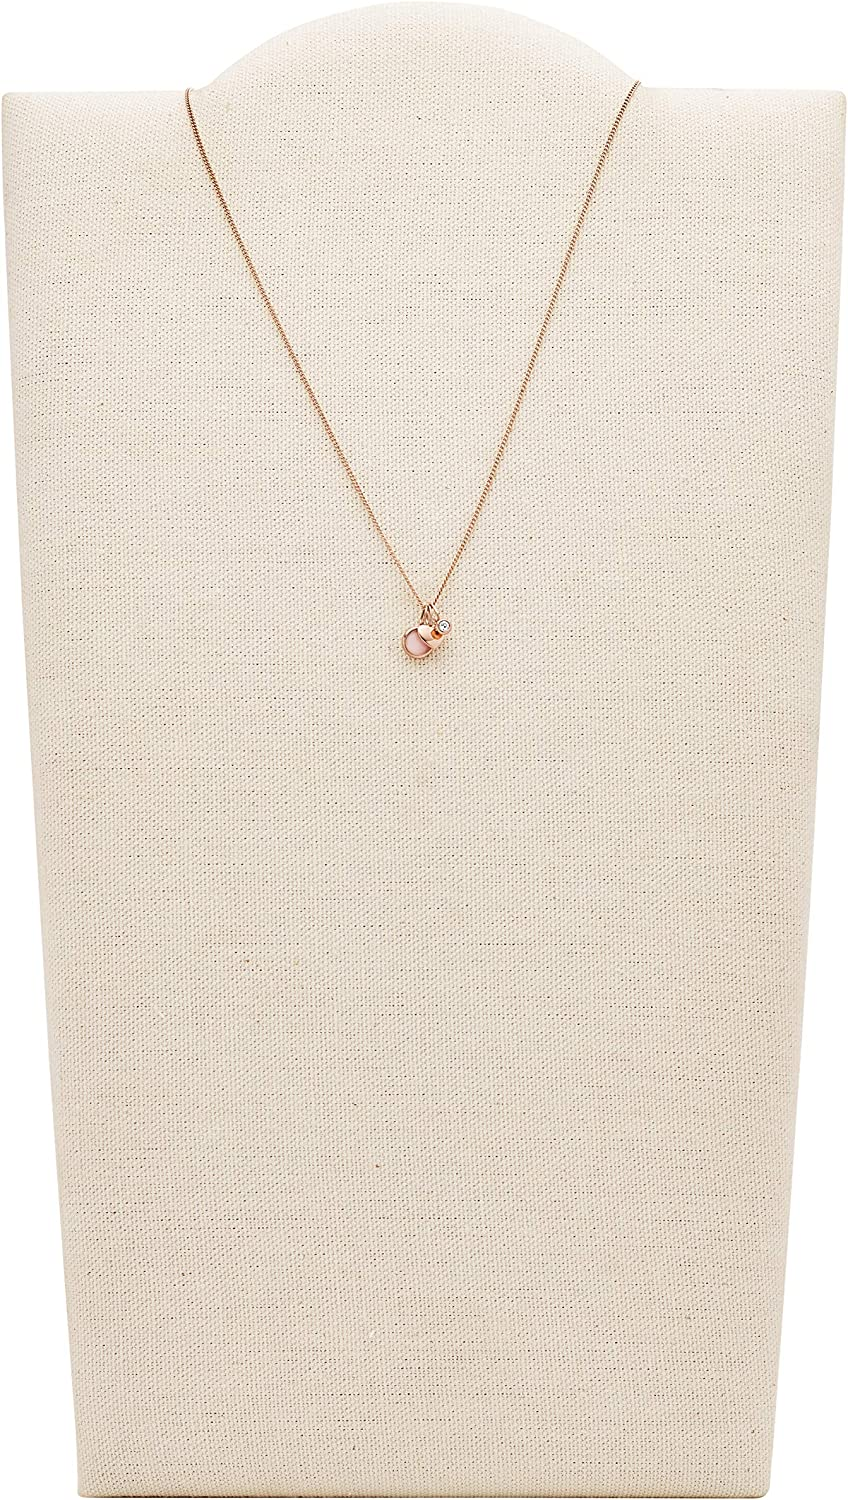 Fossil Womens Quartz Heart and Charm Necklace